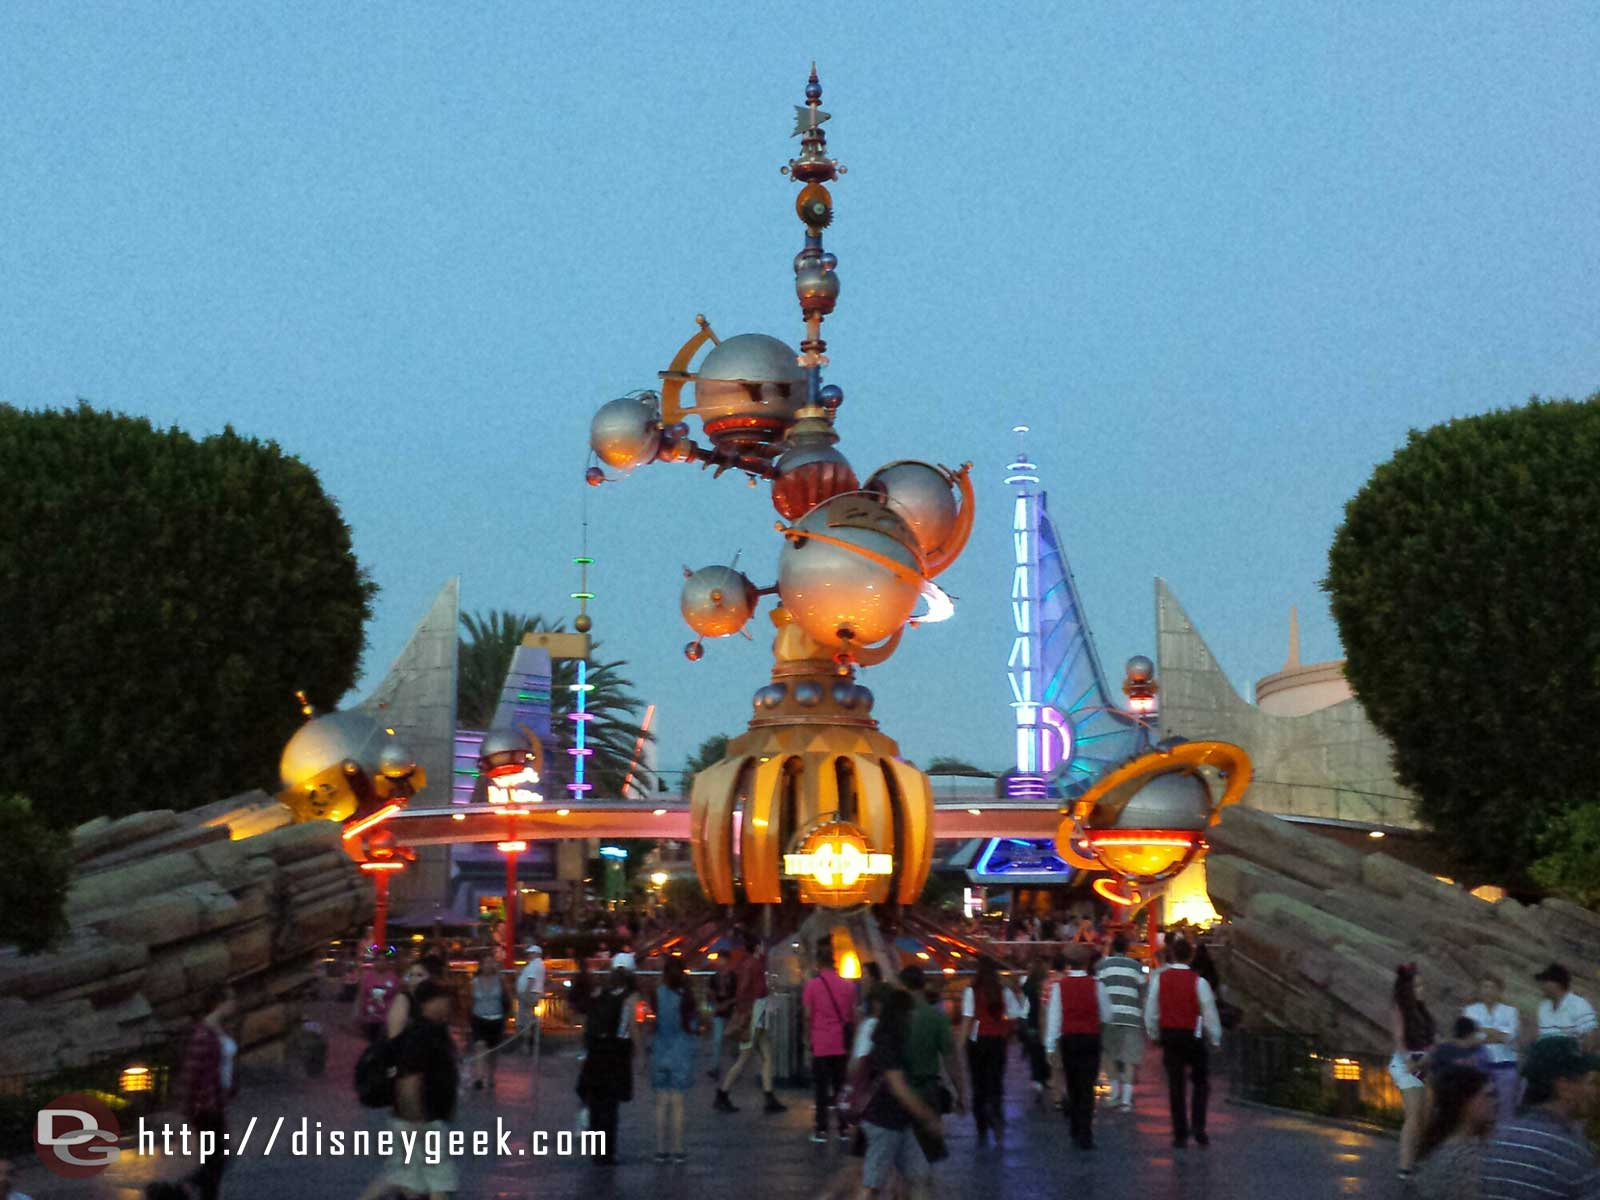 #Disneyland Tomorrowland entrance